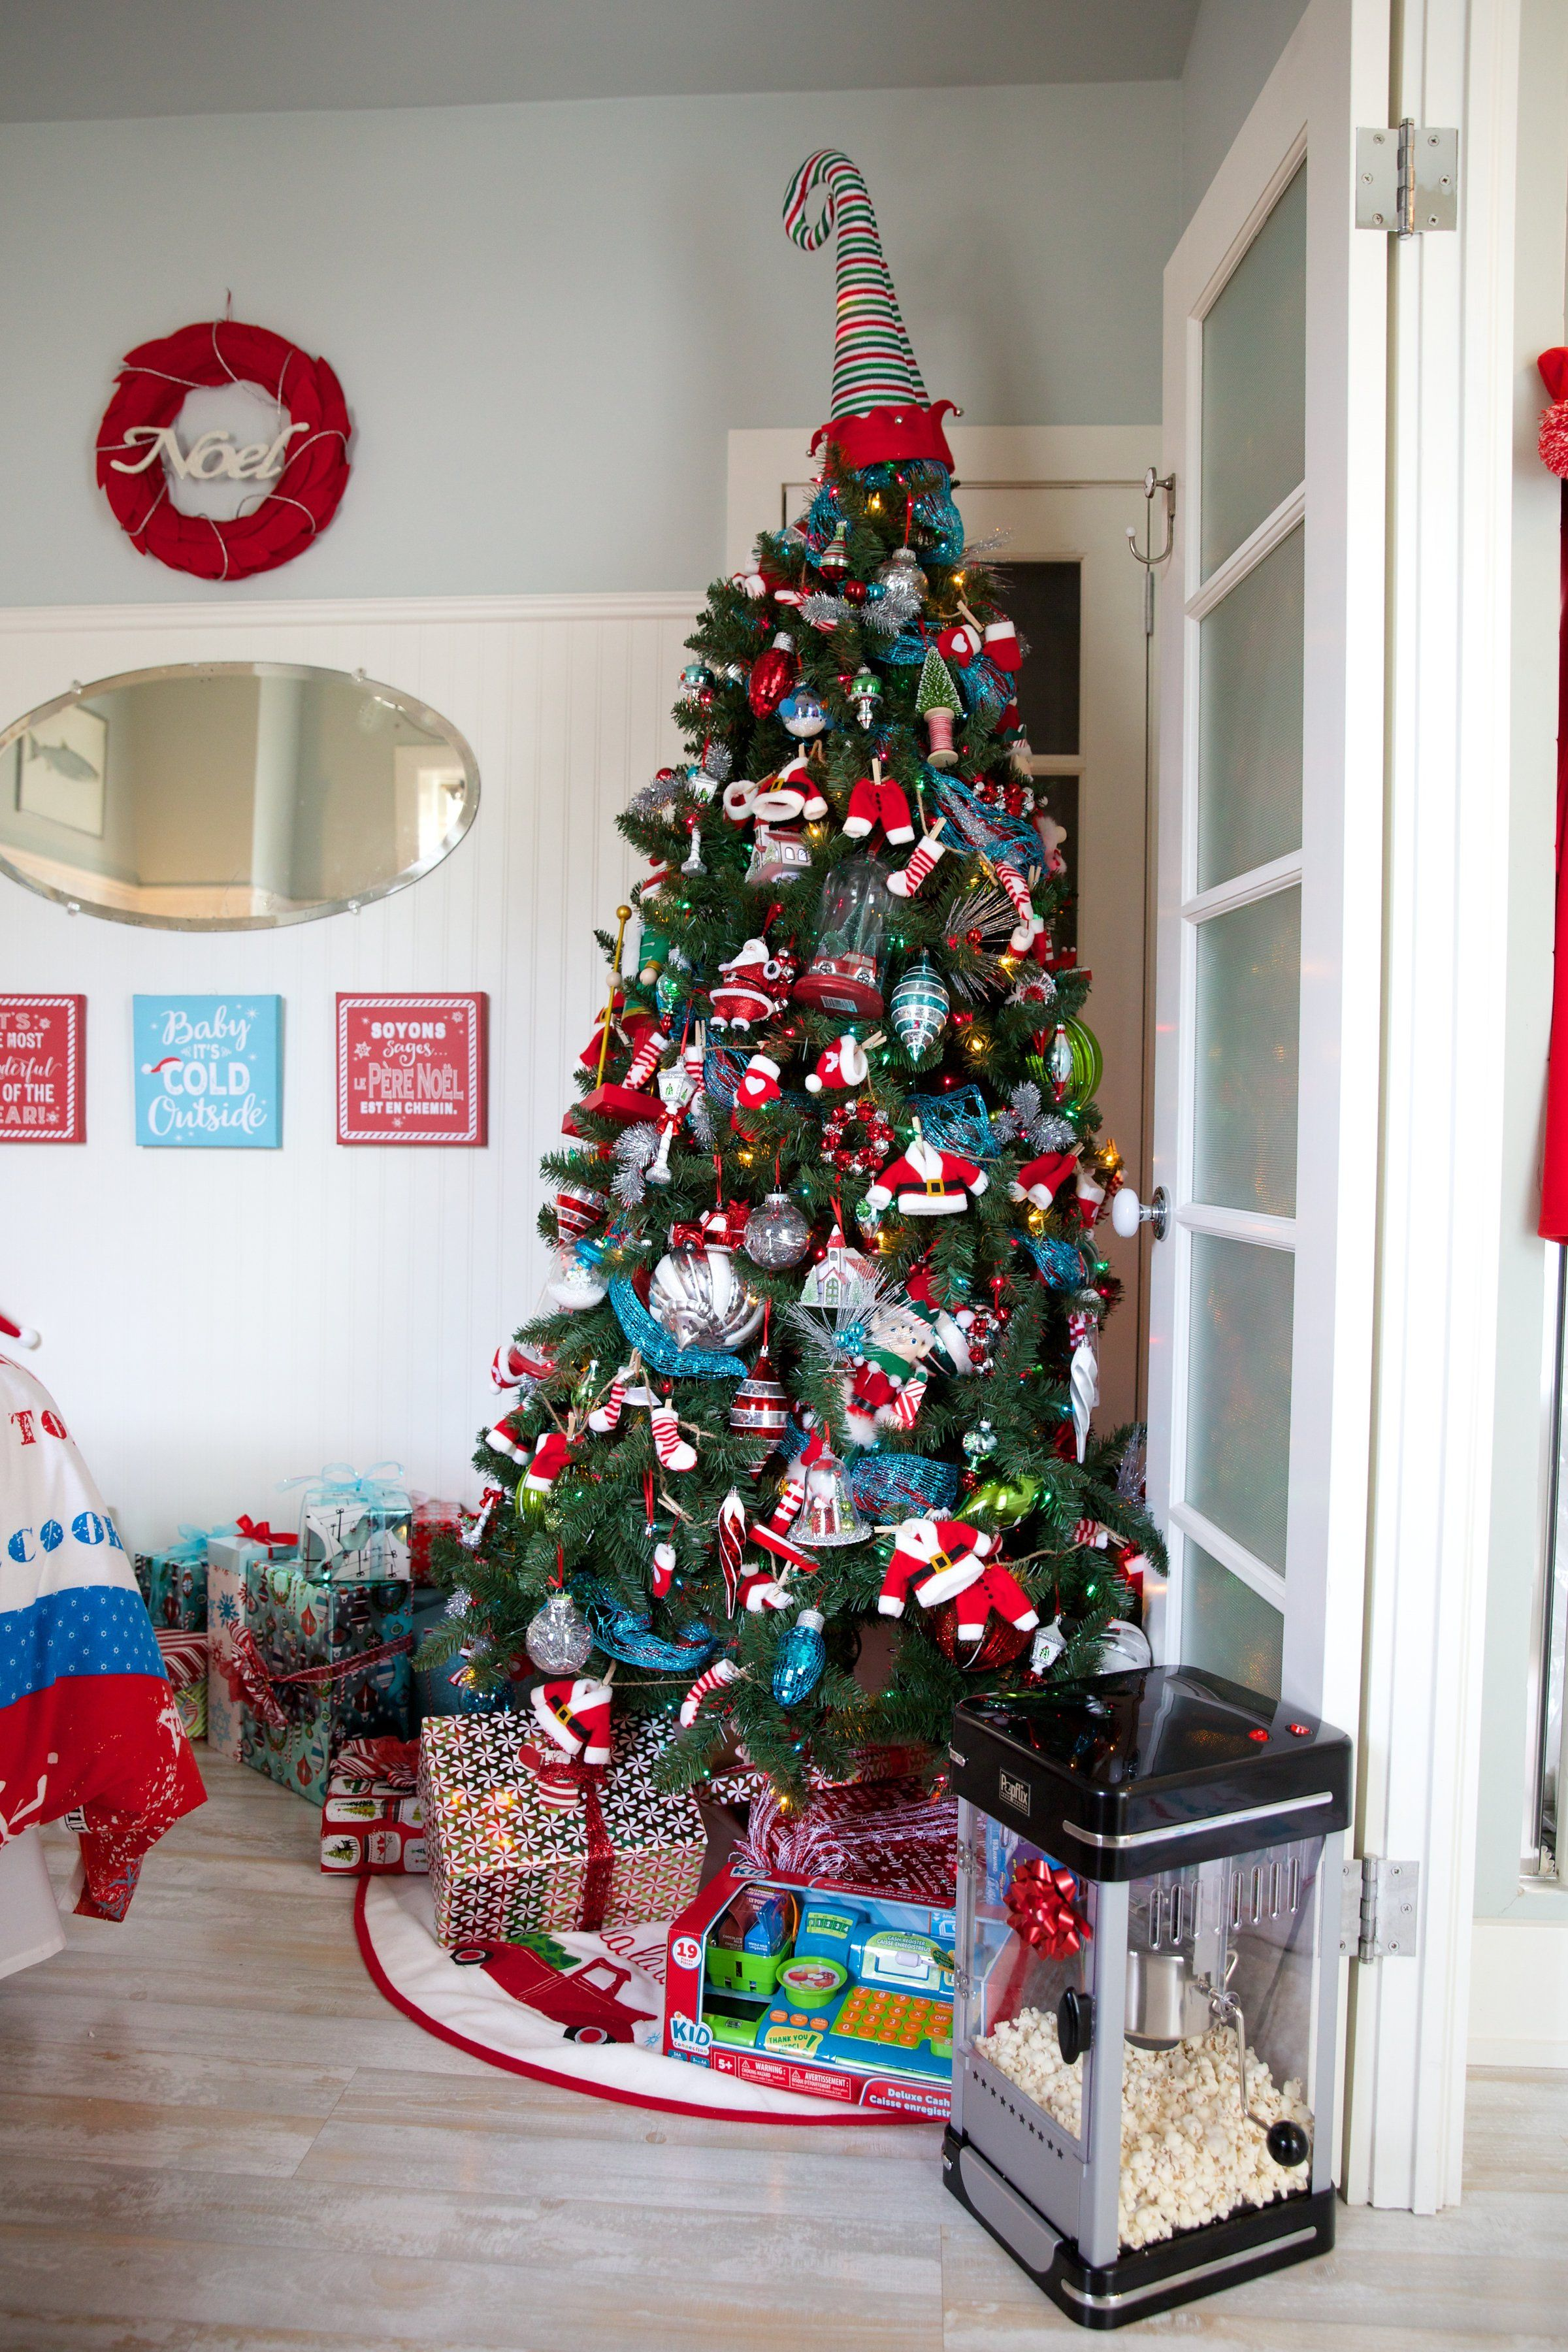 Trim your tree in vintageinspired Christmas ornaments